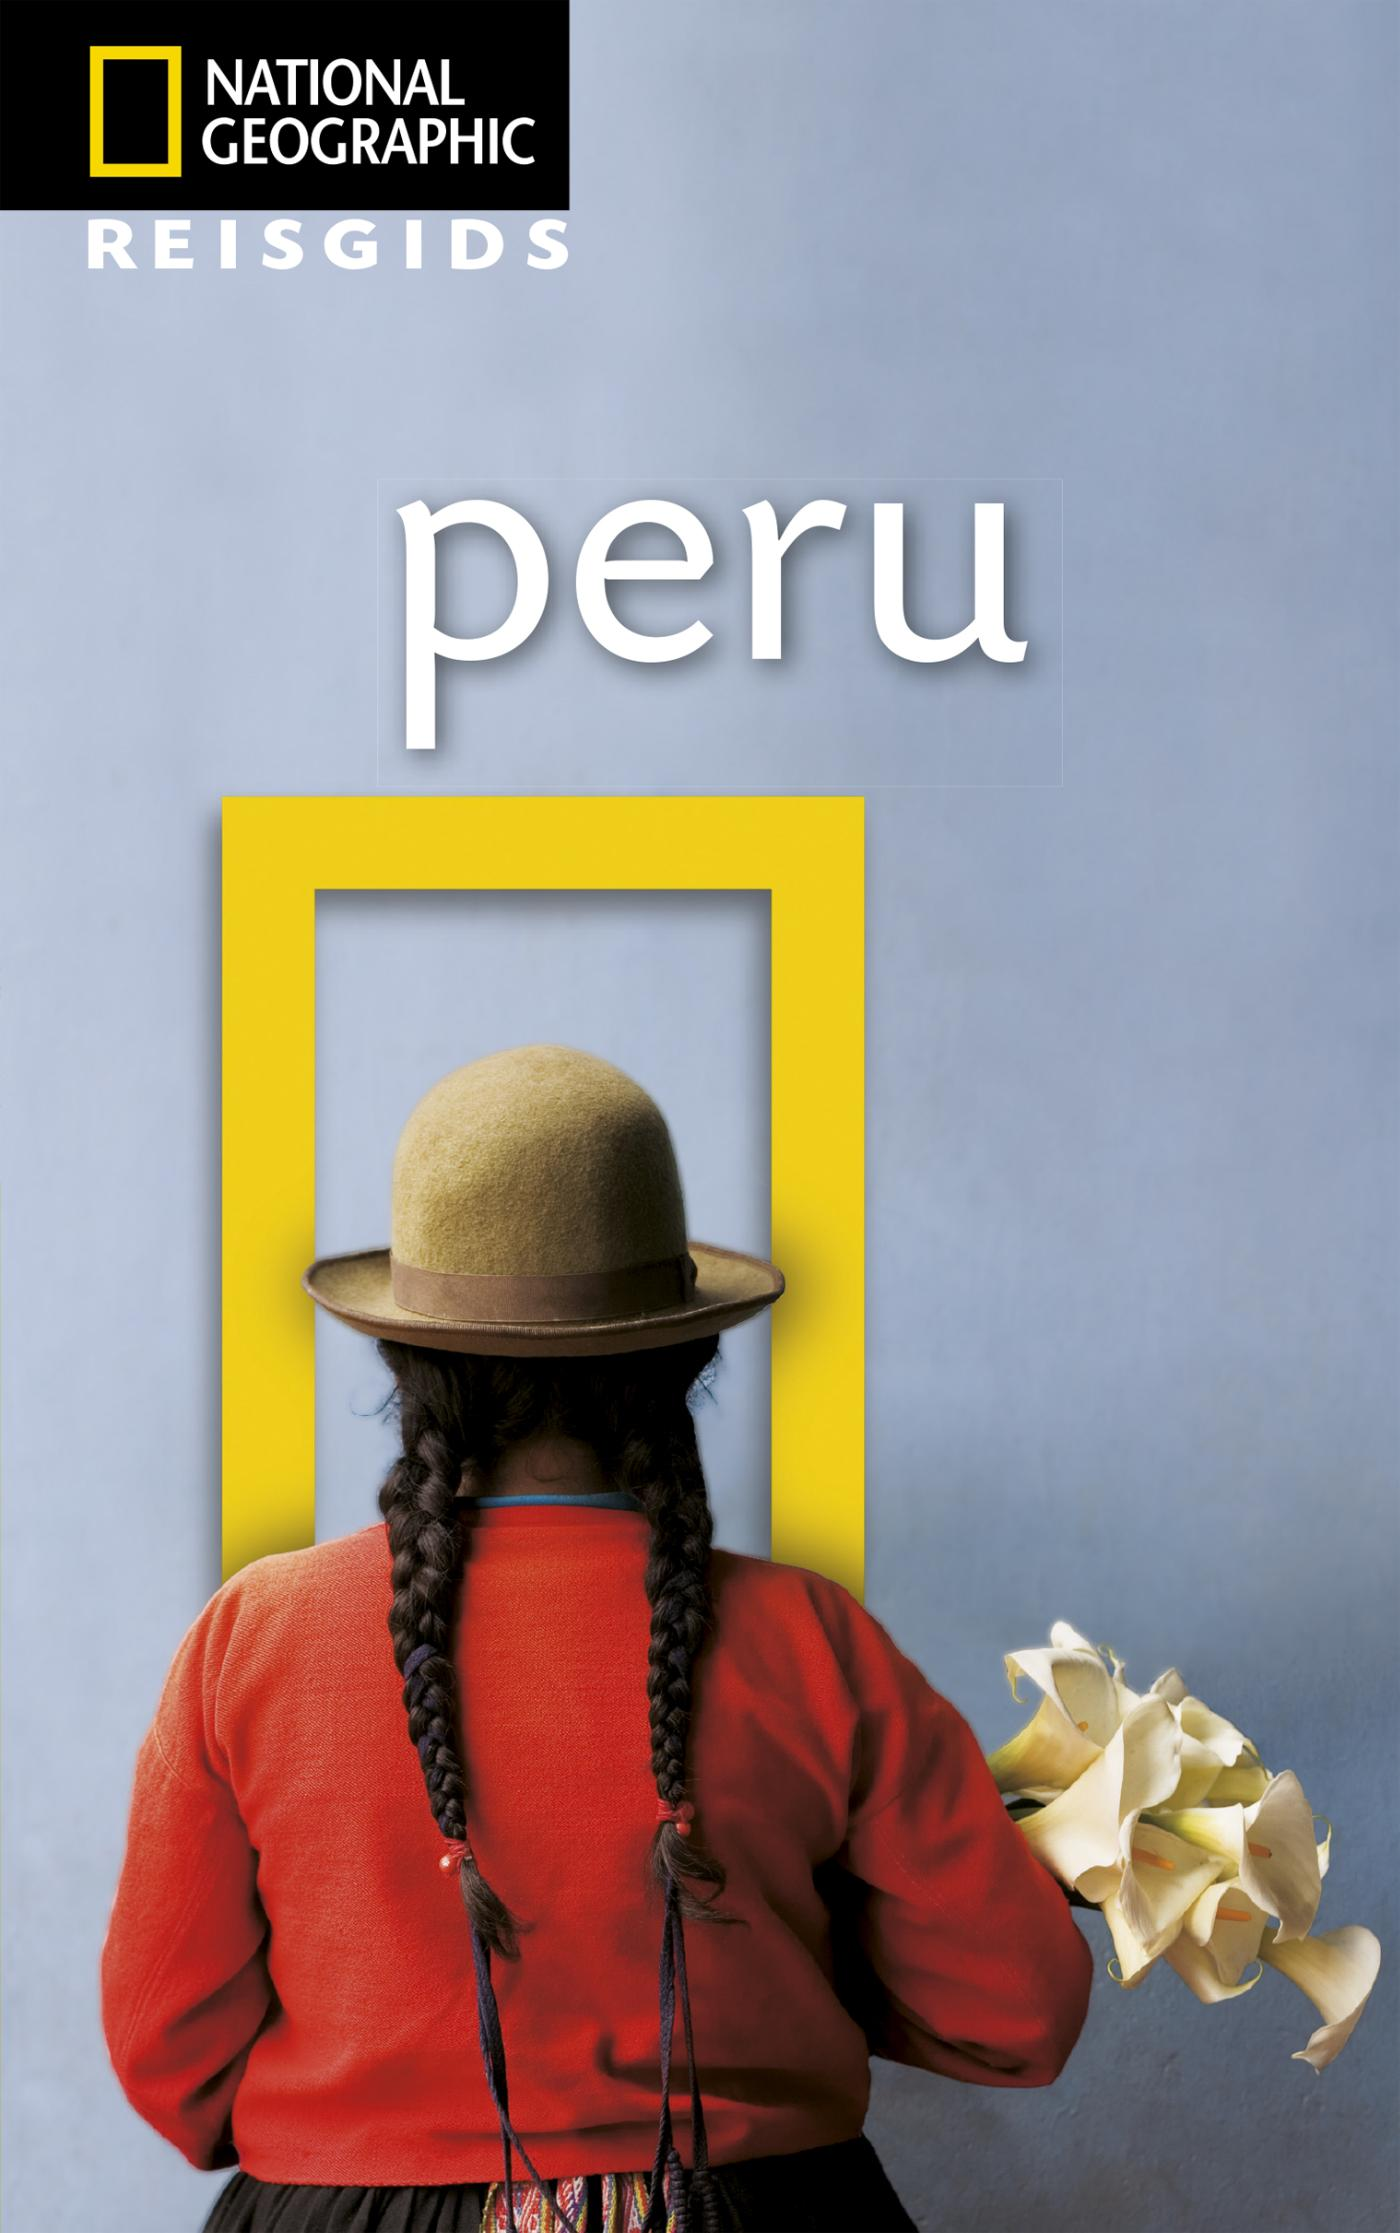 National Geographic Reisgids: Peru